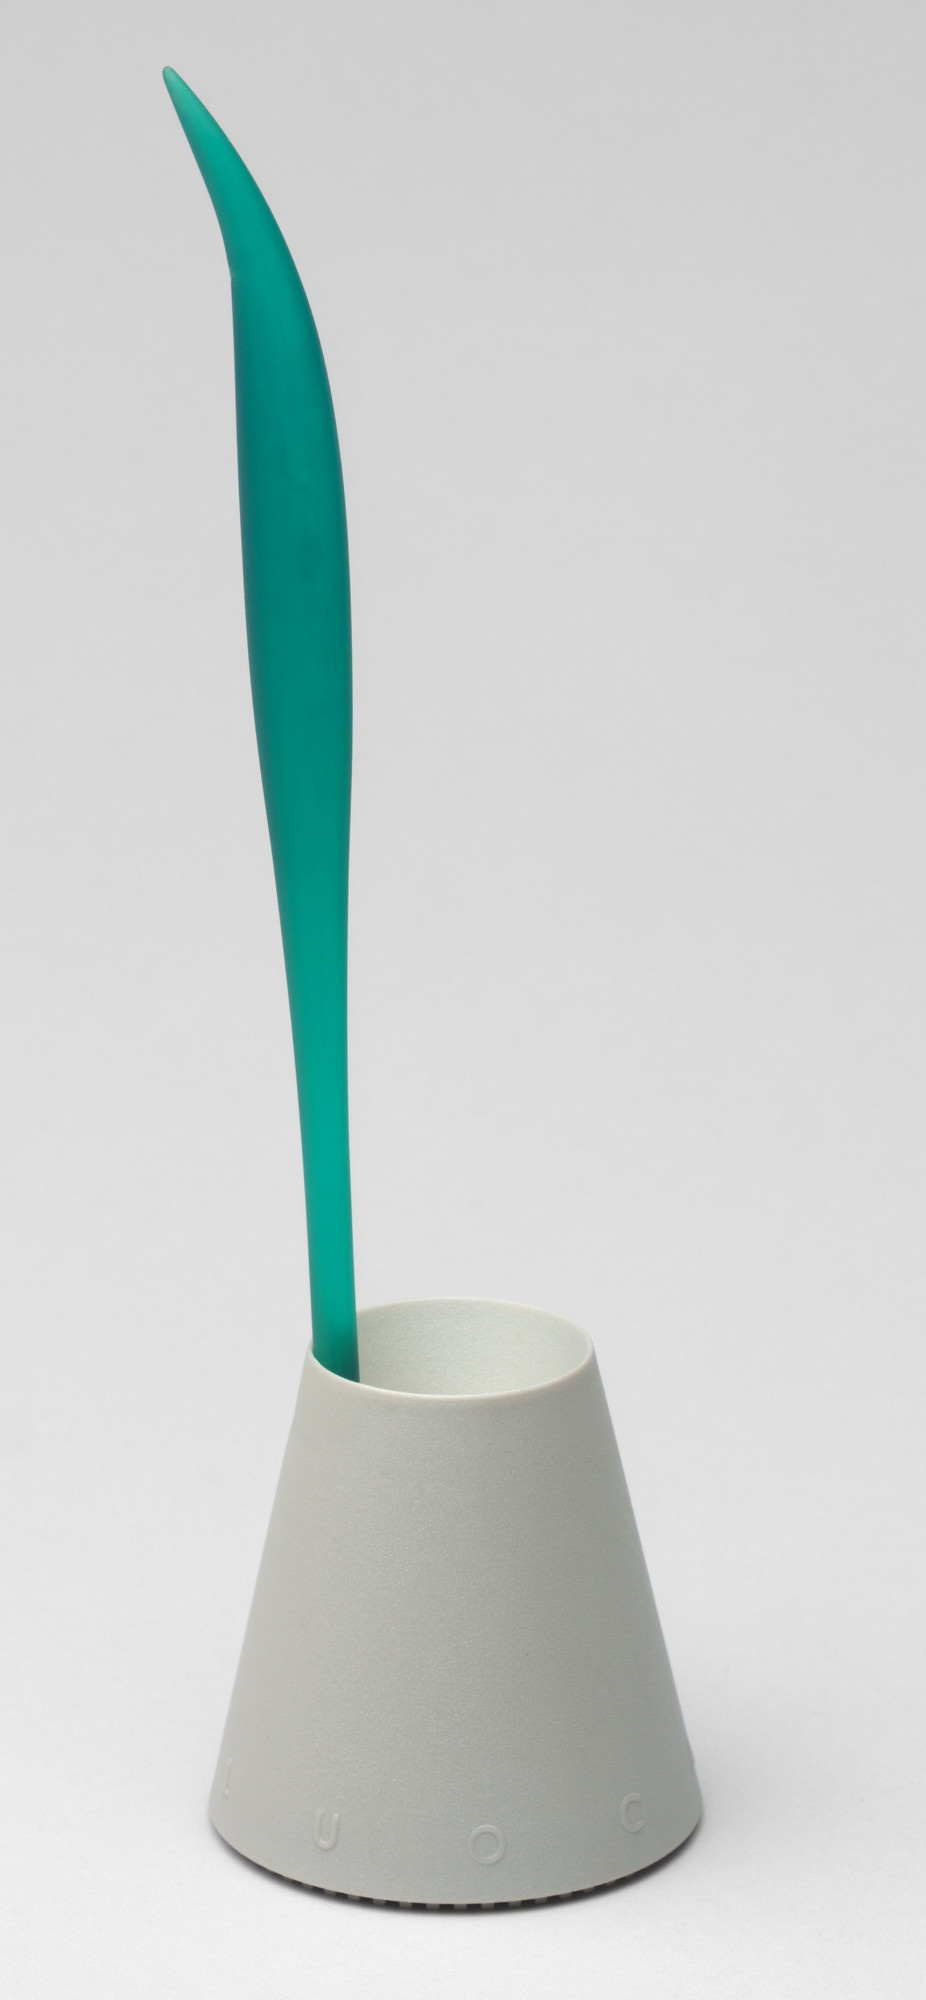 Philippe Starck. Toothbrush and Toothbrush Holder. 1989